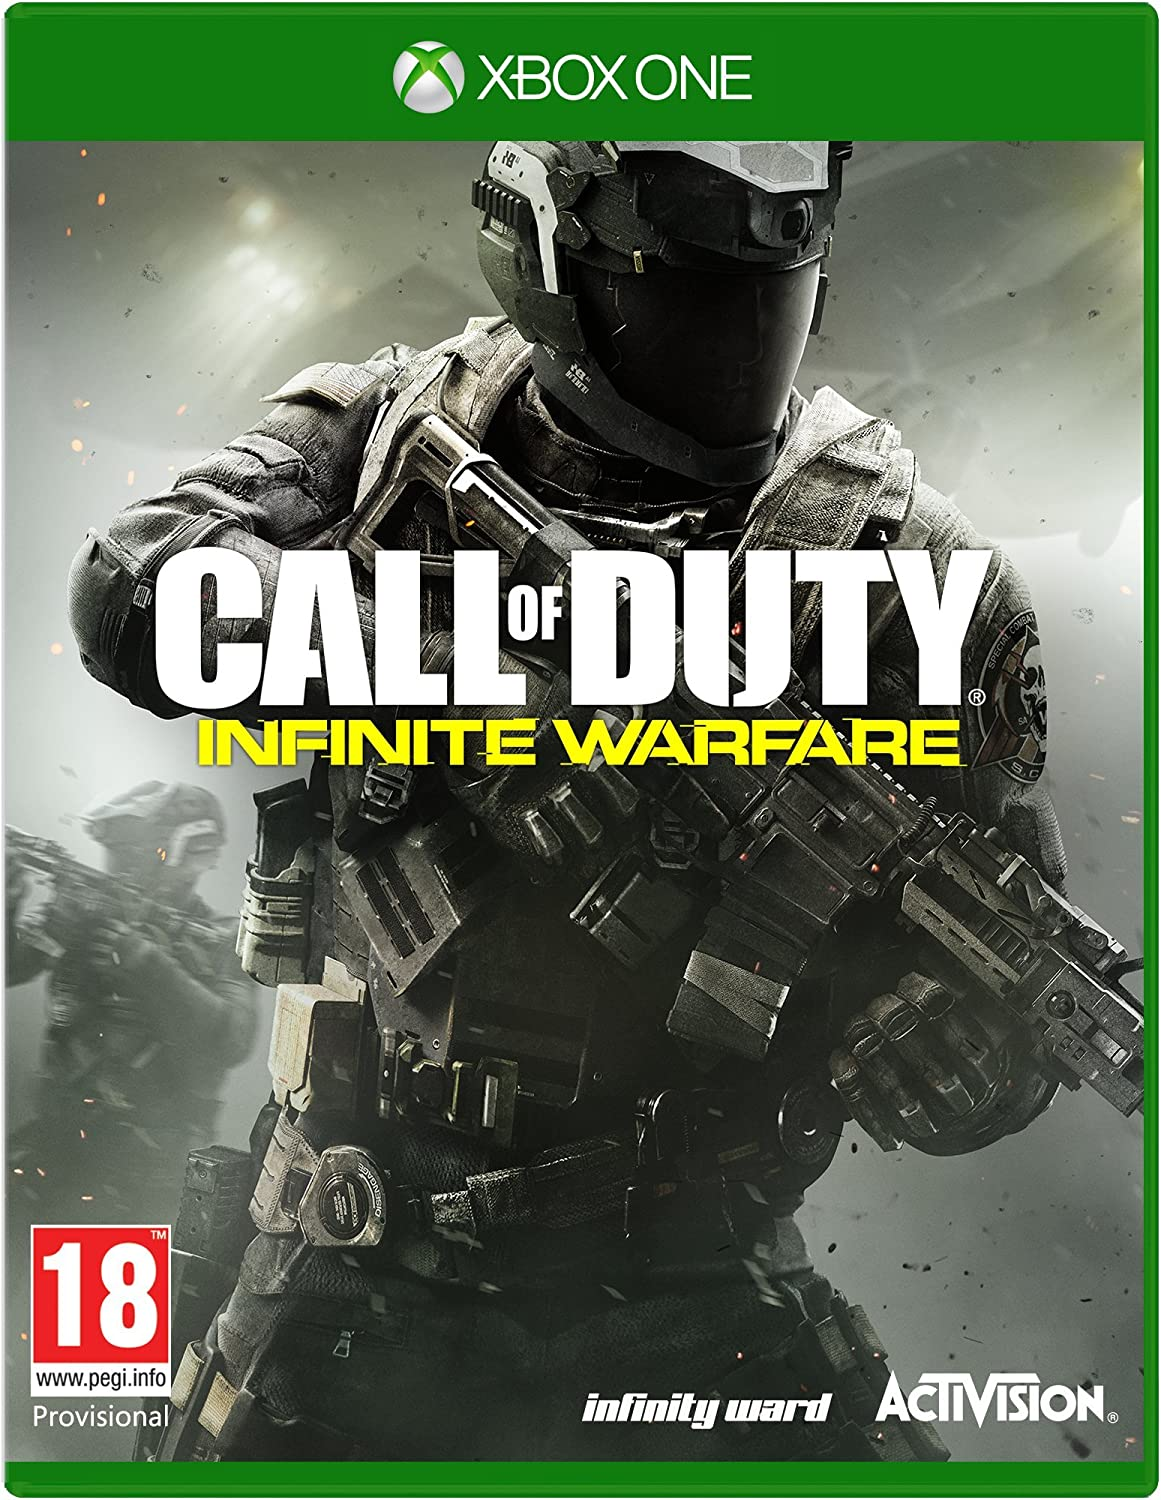 Call of Duty: Infinite Warfare - Includes Terminal Map (Xbox One ...